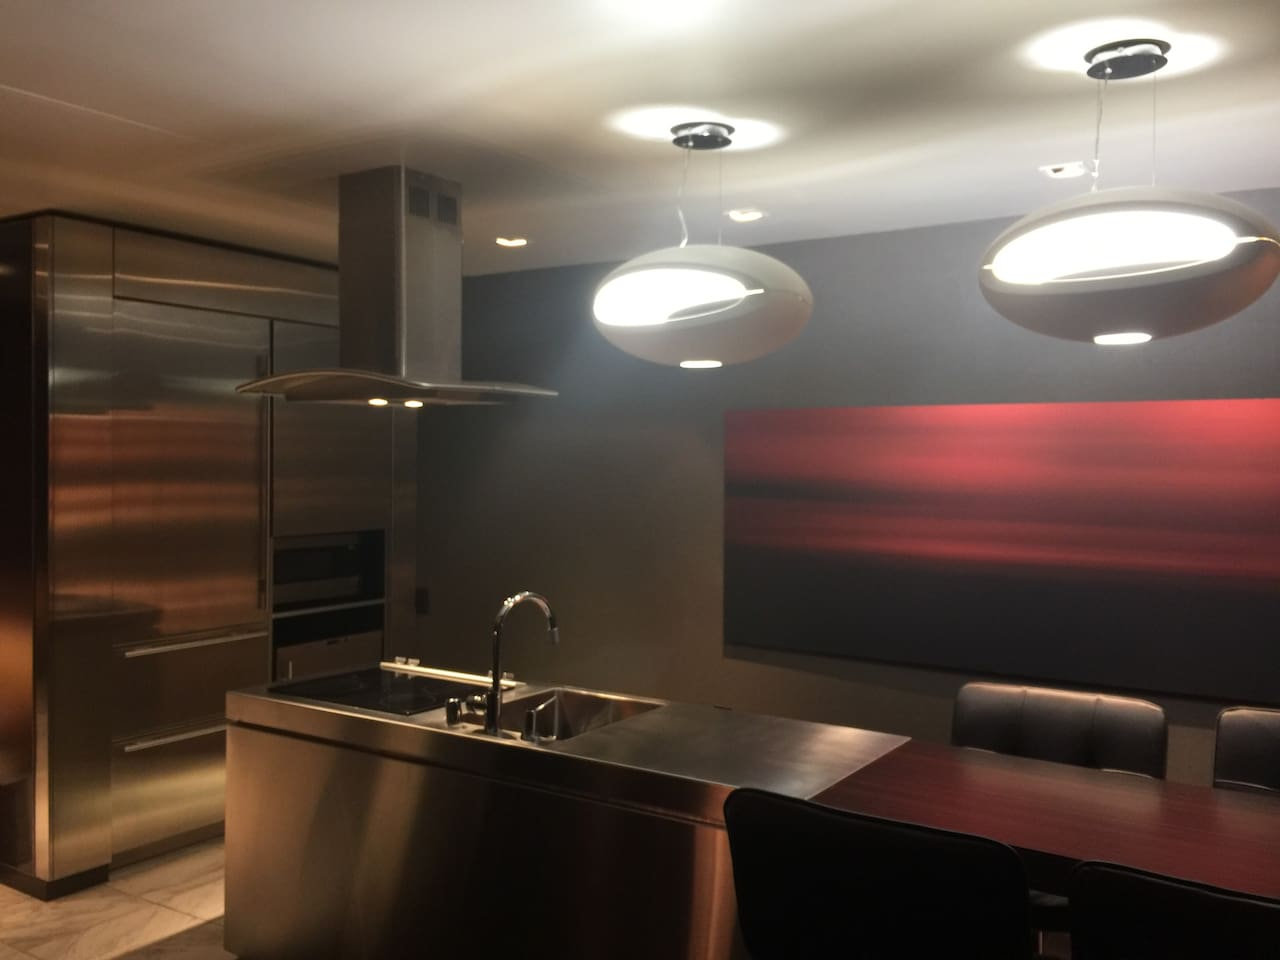 One Bedroom Suite Palms Place One Bedroom Palms Place Luxury Condo Apartments For Rent In Las